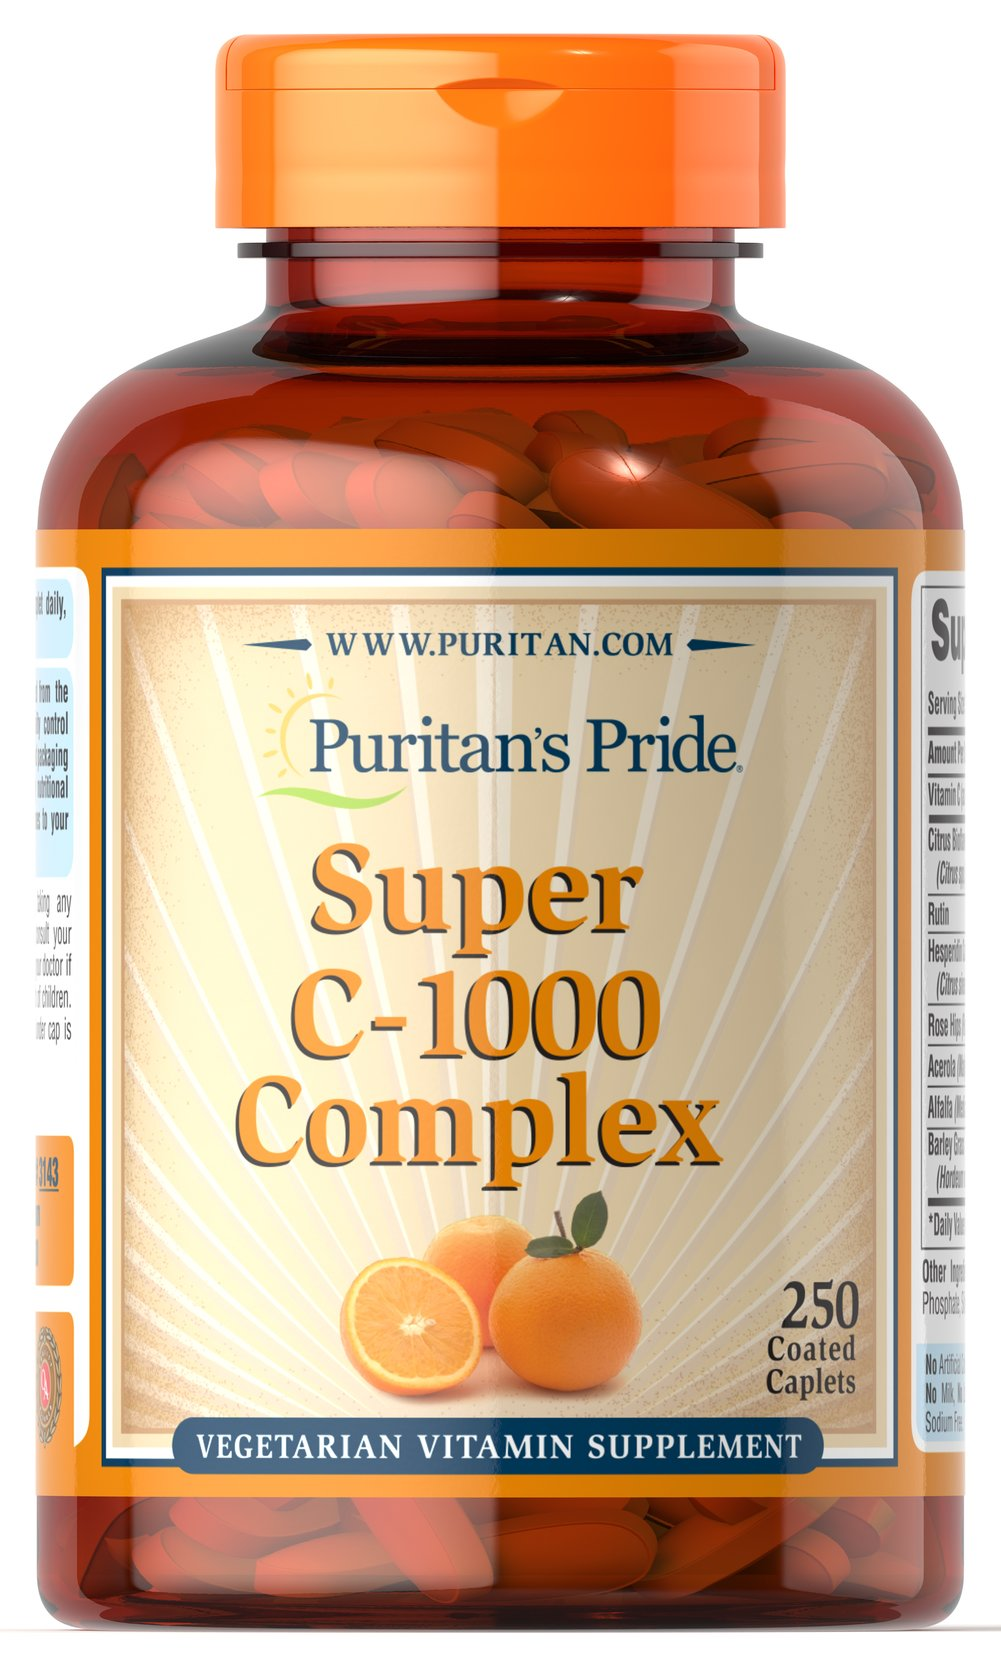 C-1000 Complex™ <p>Vitamin C  is essential to many functions in the body and is one of the leading vitamins for immune support.** Our C-complex includes potent Vitamin C as Ascorbic Acid. We also include Citrus Bioflavonoids, Rose Hips, Rutin, and Acerola.**</p><p>Offers superior antioxidant support.**</p><p>Supports healthy immune function and promotes well-being.**</p> 250 Coated Caplets 1000 mg $35.99